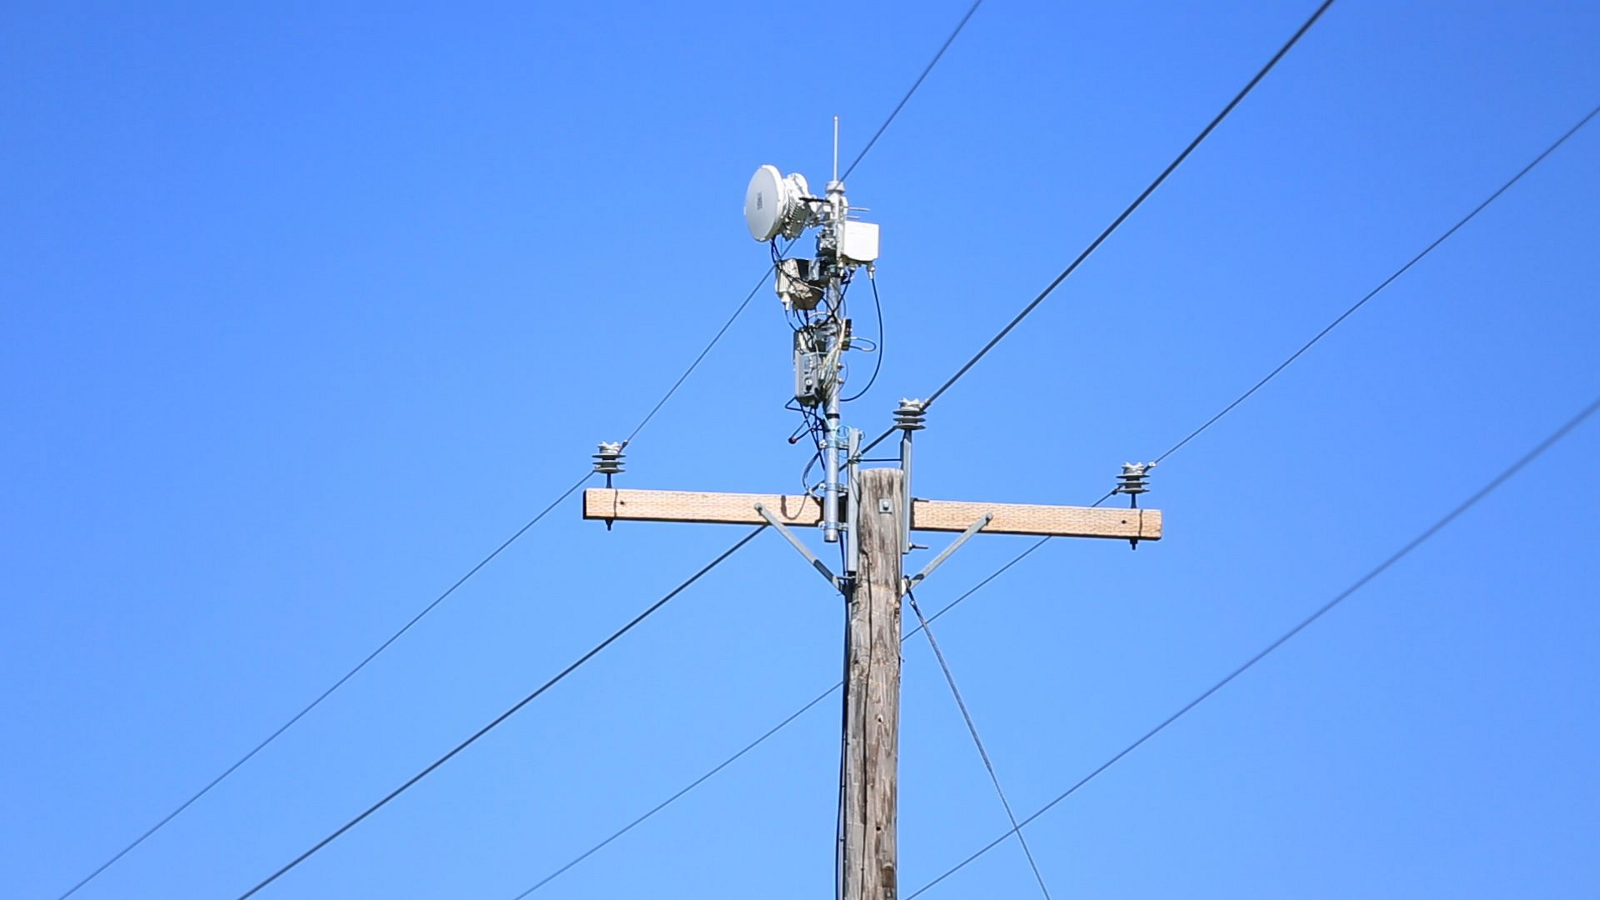 10 Key Issues For California Cities Counties On The Challenges Of Group Overview Residential Electrical Wiring Basics Los Altos Atts Project Airgig Would Attach Antennas Onto Power Lines To Send Data Signals Around Wires Instead Through Them From Cnetcom